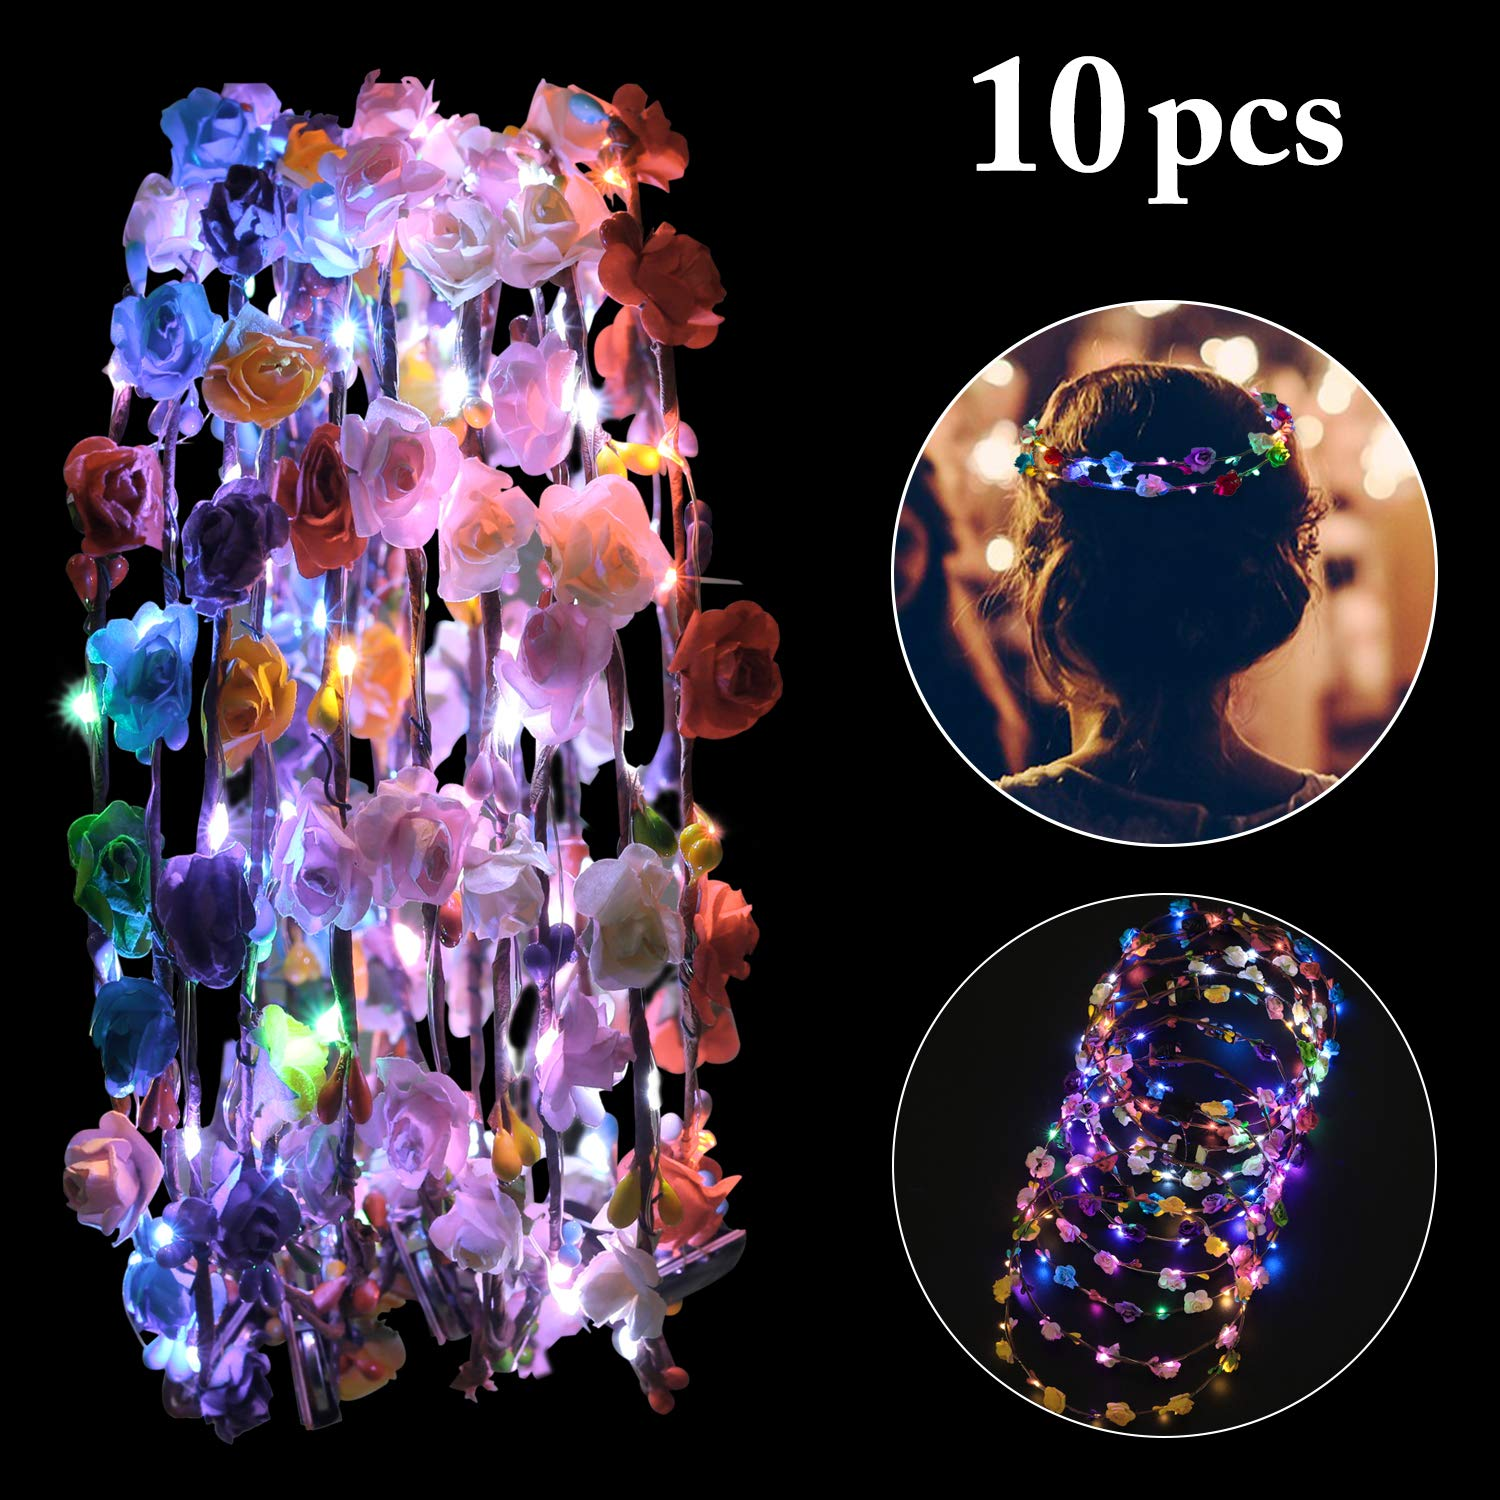 Fansport LED Flower Crowns Light up Flowers Wreath Luminous Flower Headband Crown Floral Headpiece Photograph Prop For Girls Women Wedding Festival Christmas New Year Party (10PCS)